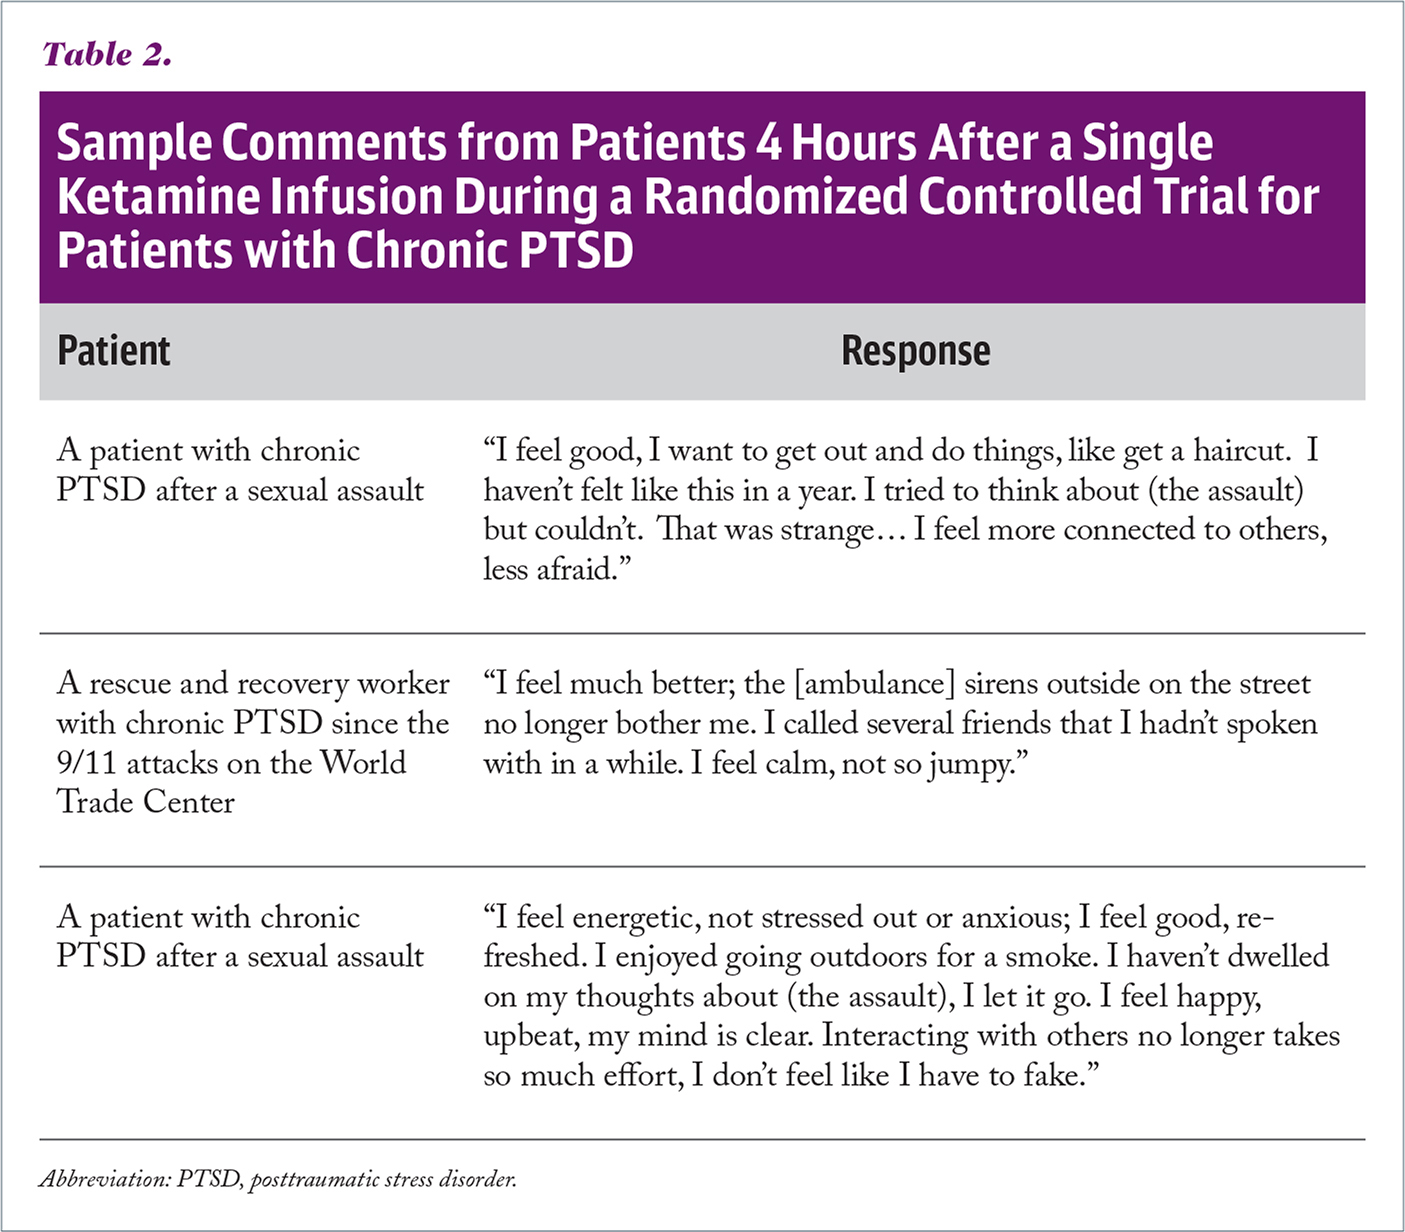 Sample Comments from Patients 4 Hours After a Single Ketamine Infusion During a Randomized Controlled Trial for Patients with Chronic PTSD